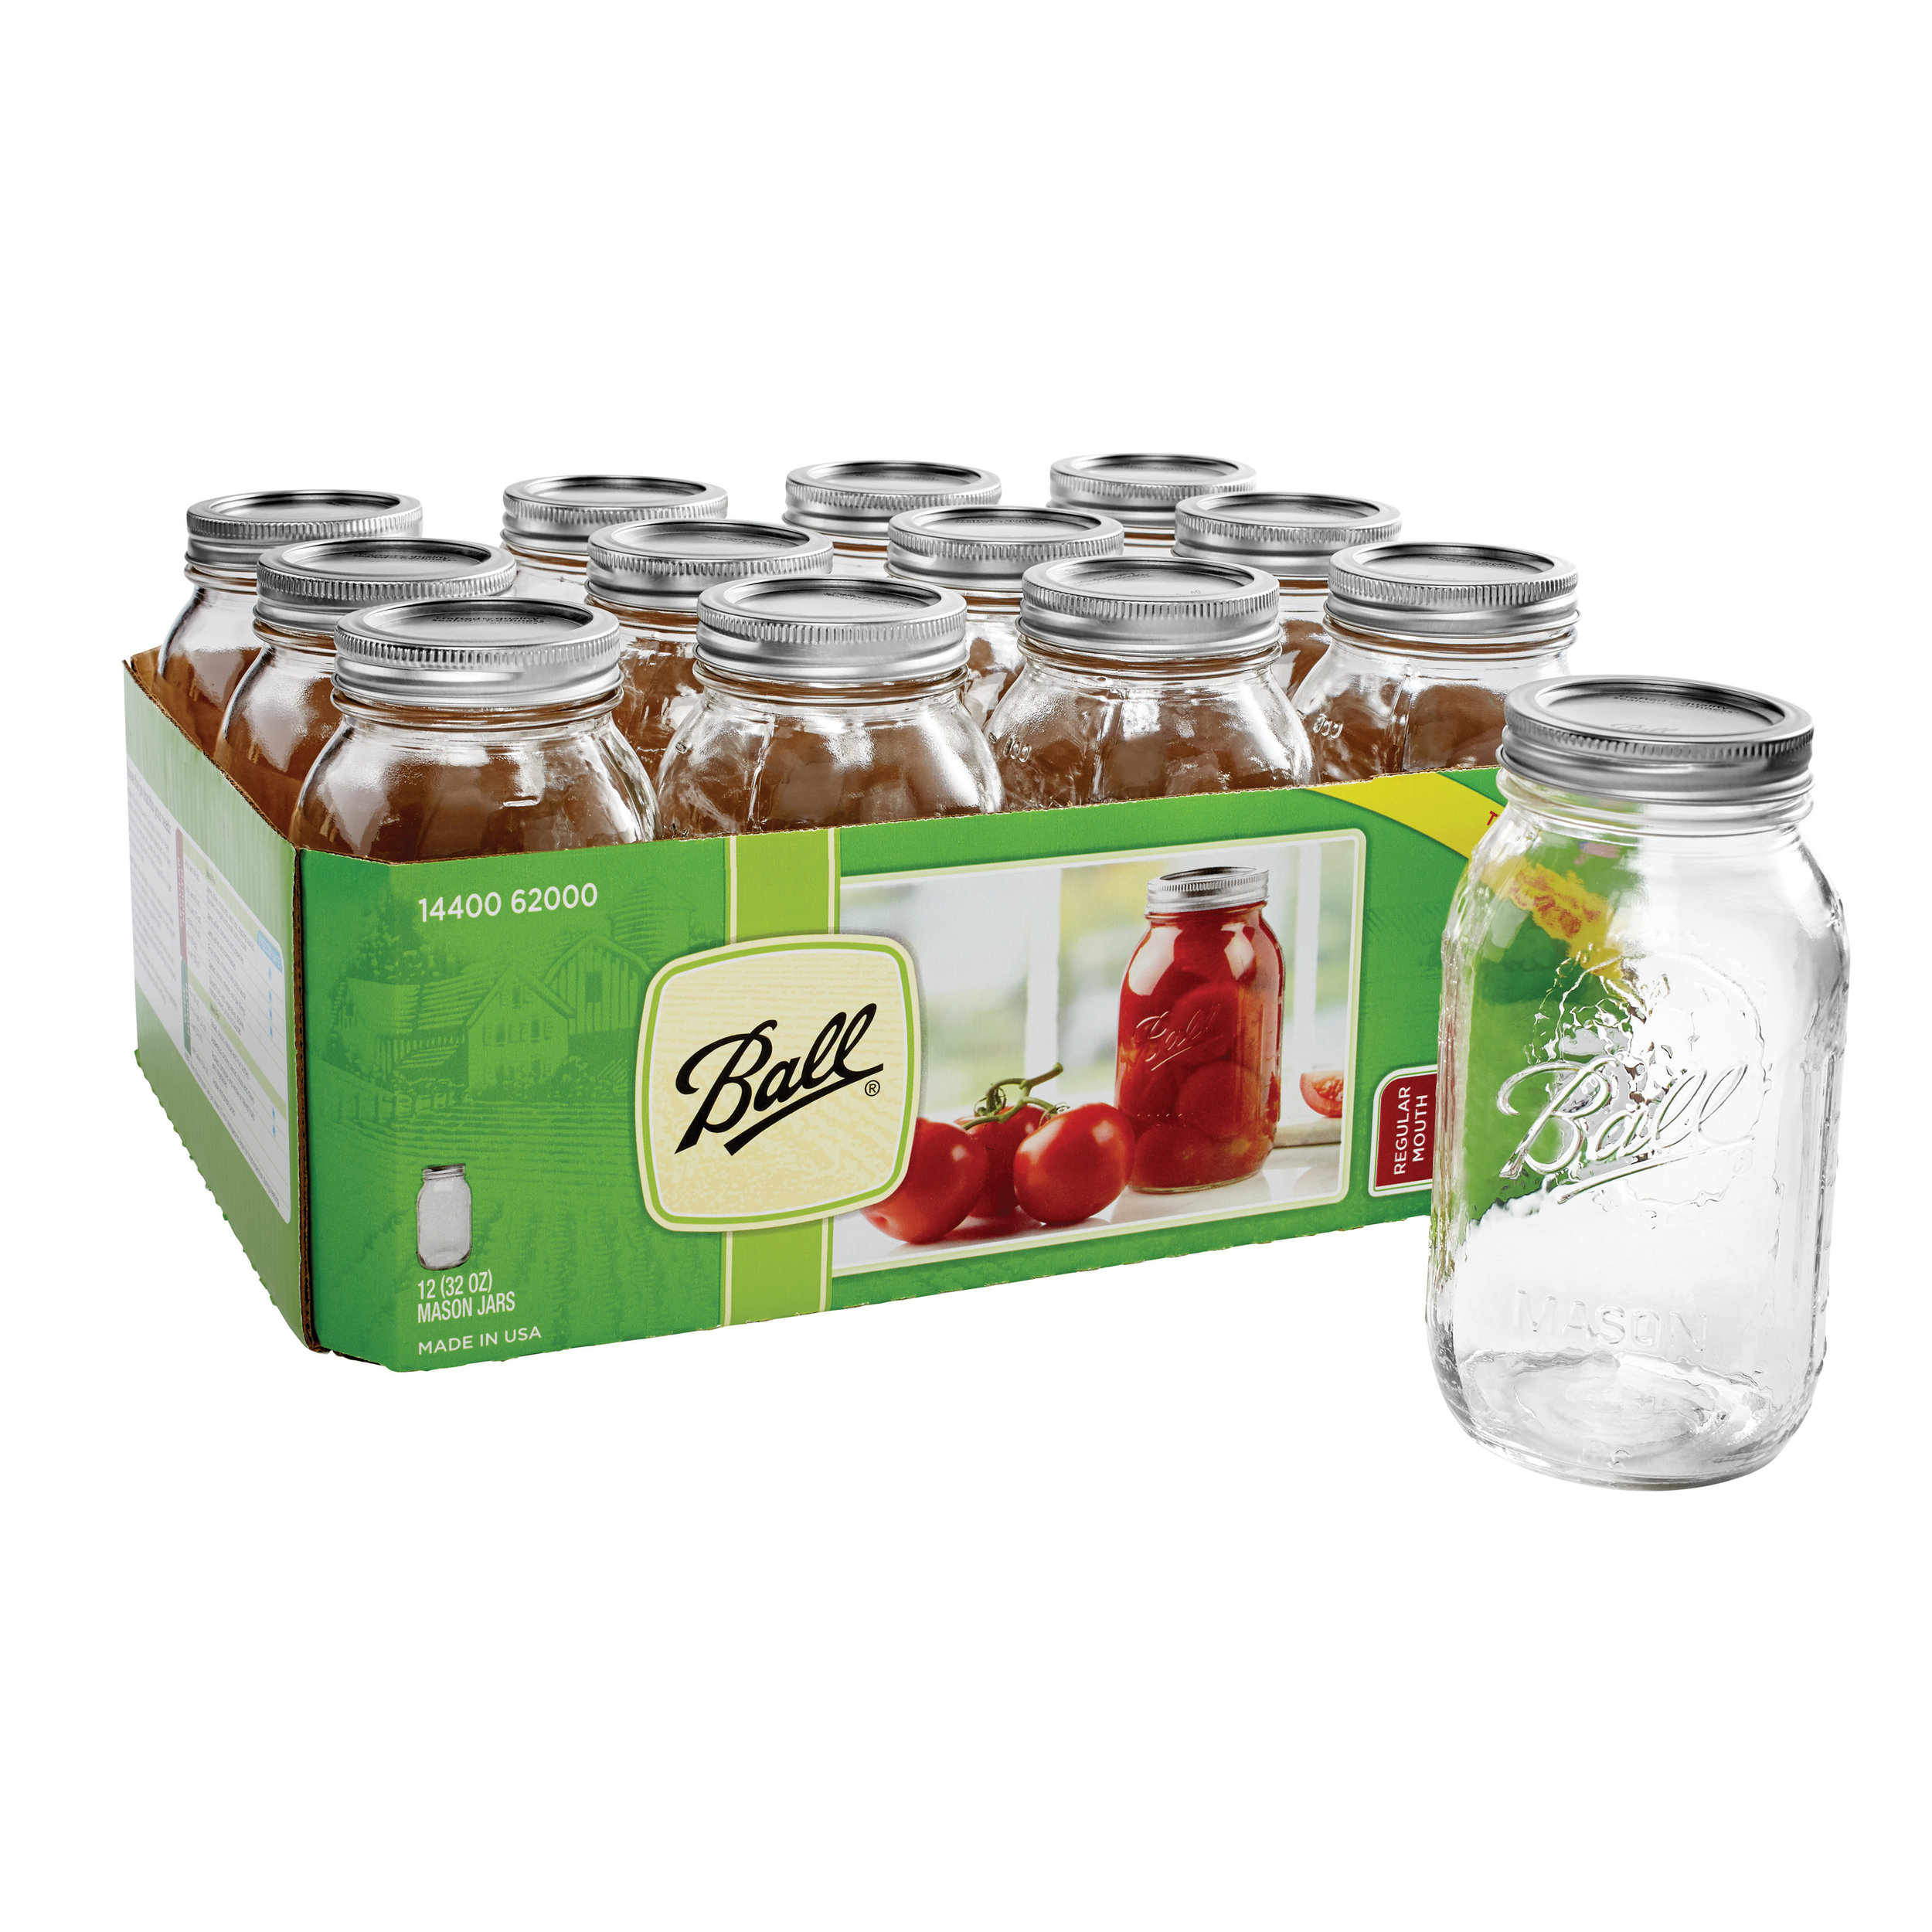 32 oz Ball Mason Jars - These classics speak for themselves.